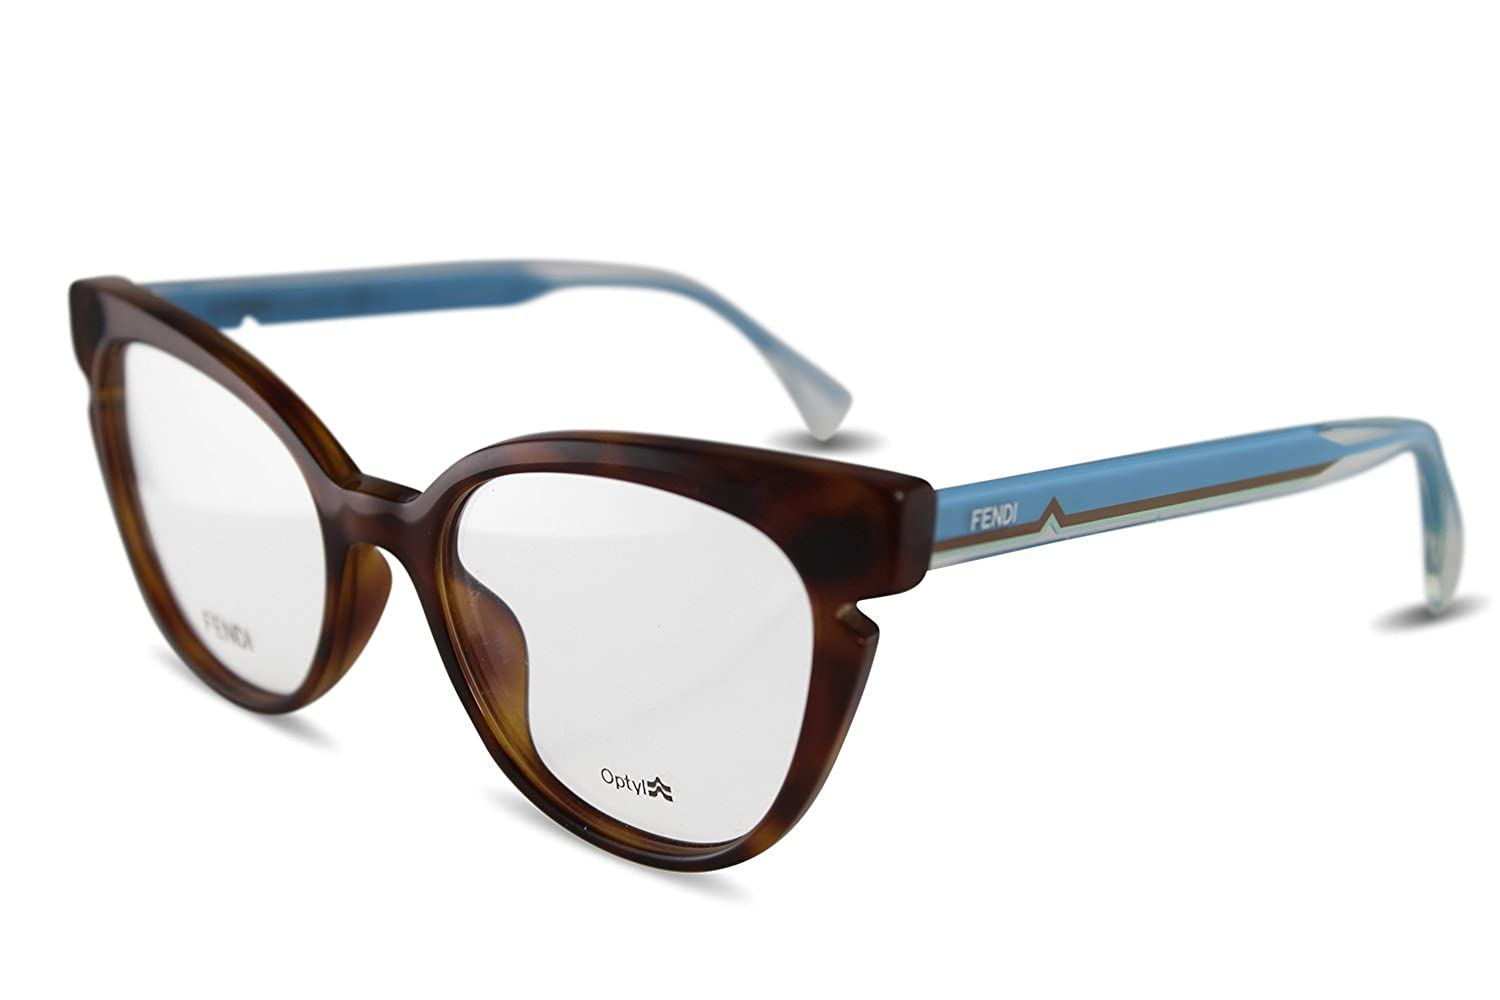 66fcbddd31b Amazon.com  FENDI Eyeglasses 0134 0N9D Havana Crystal Blue 50MM  Clothing